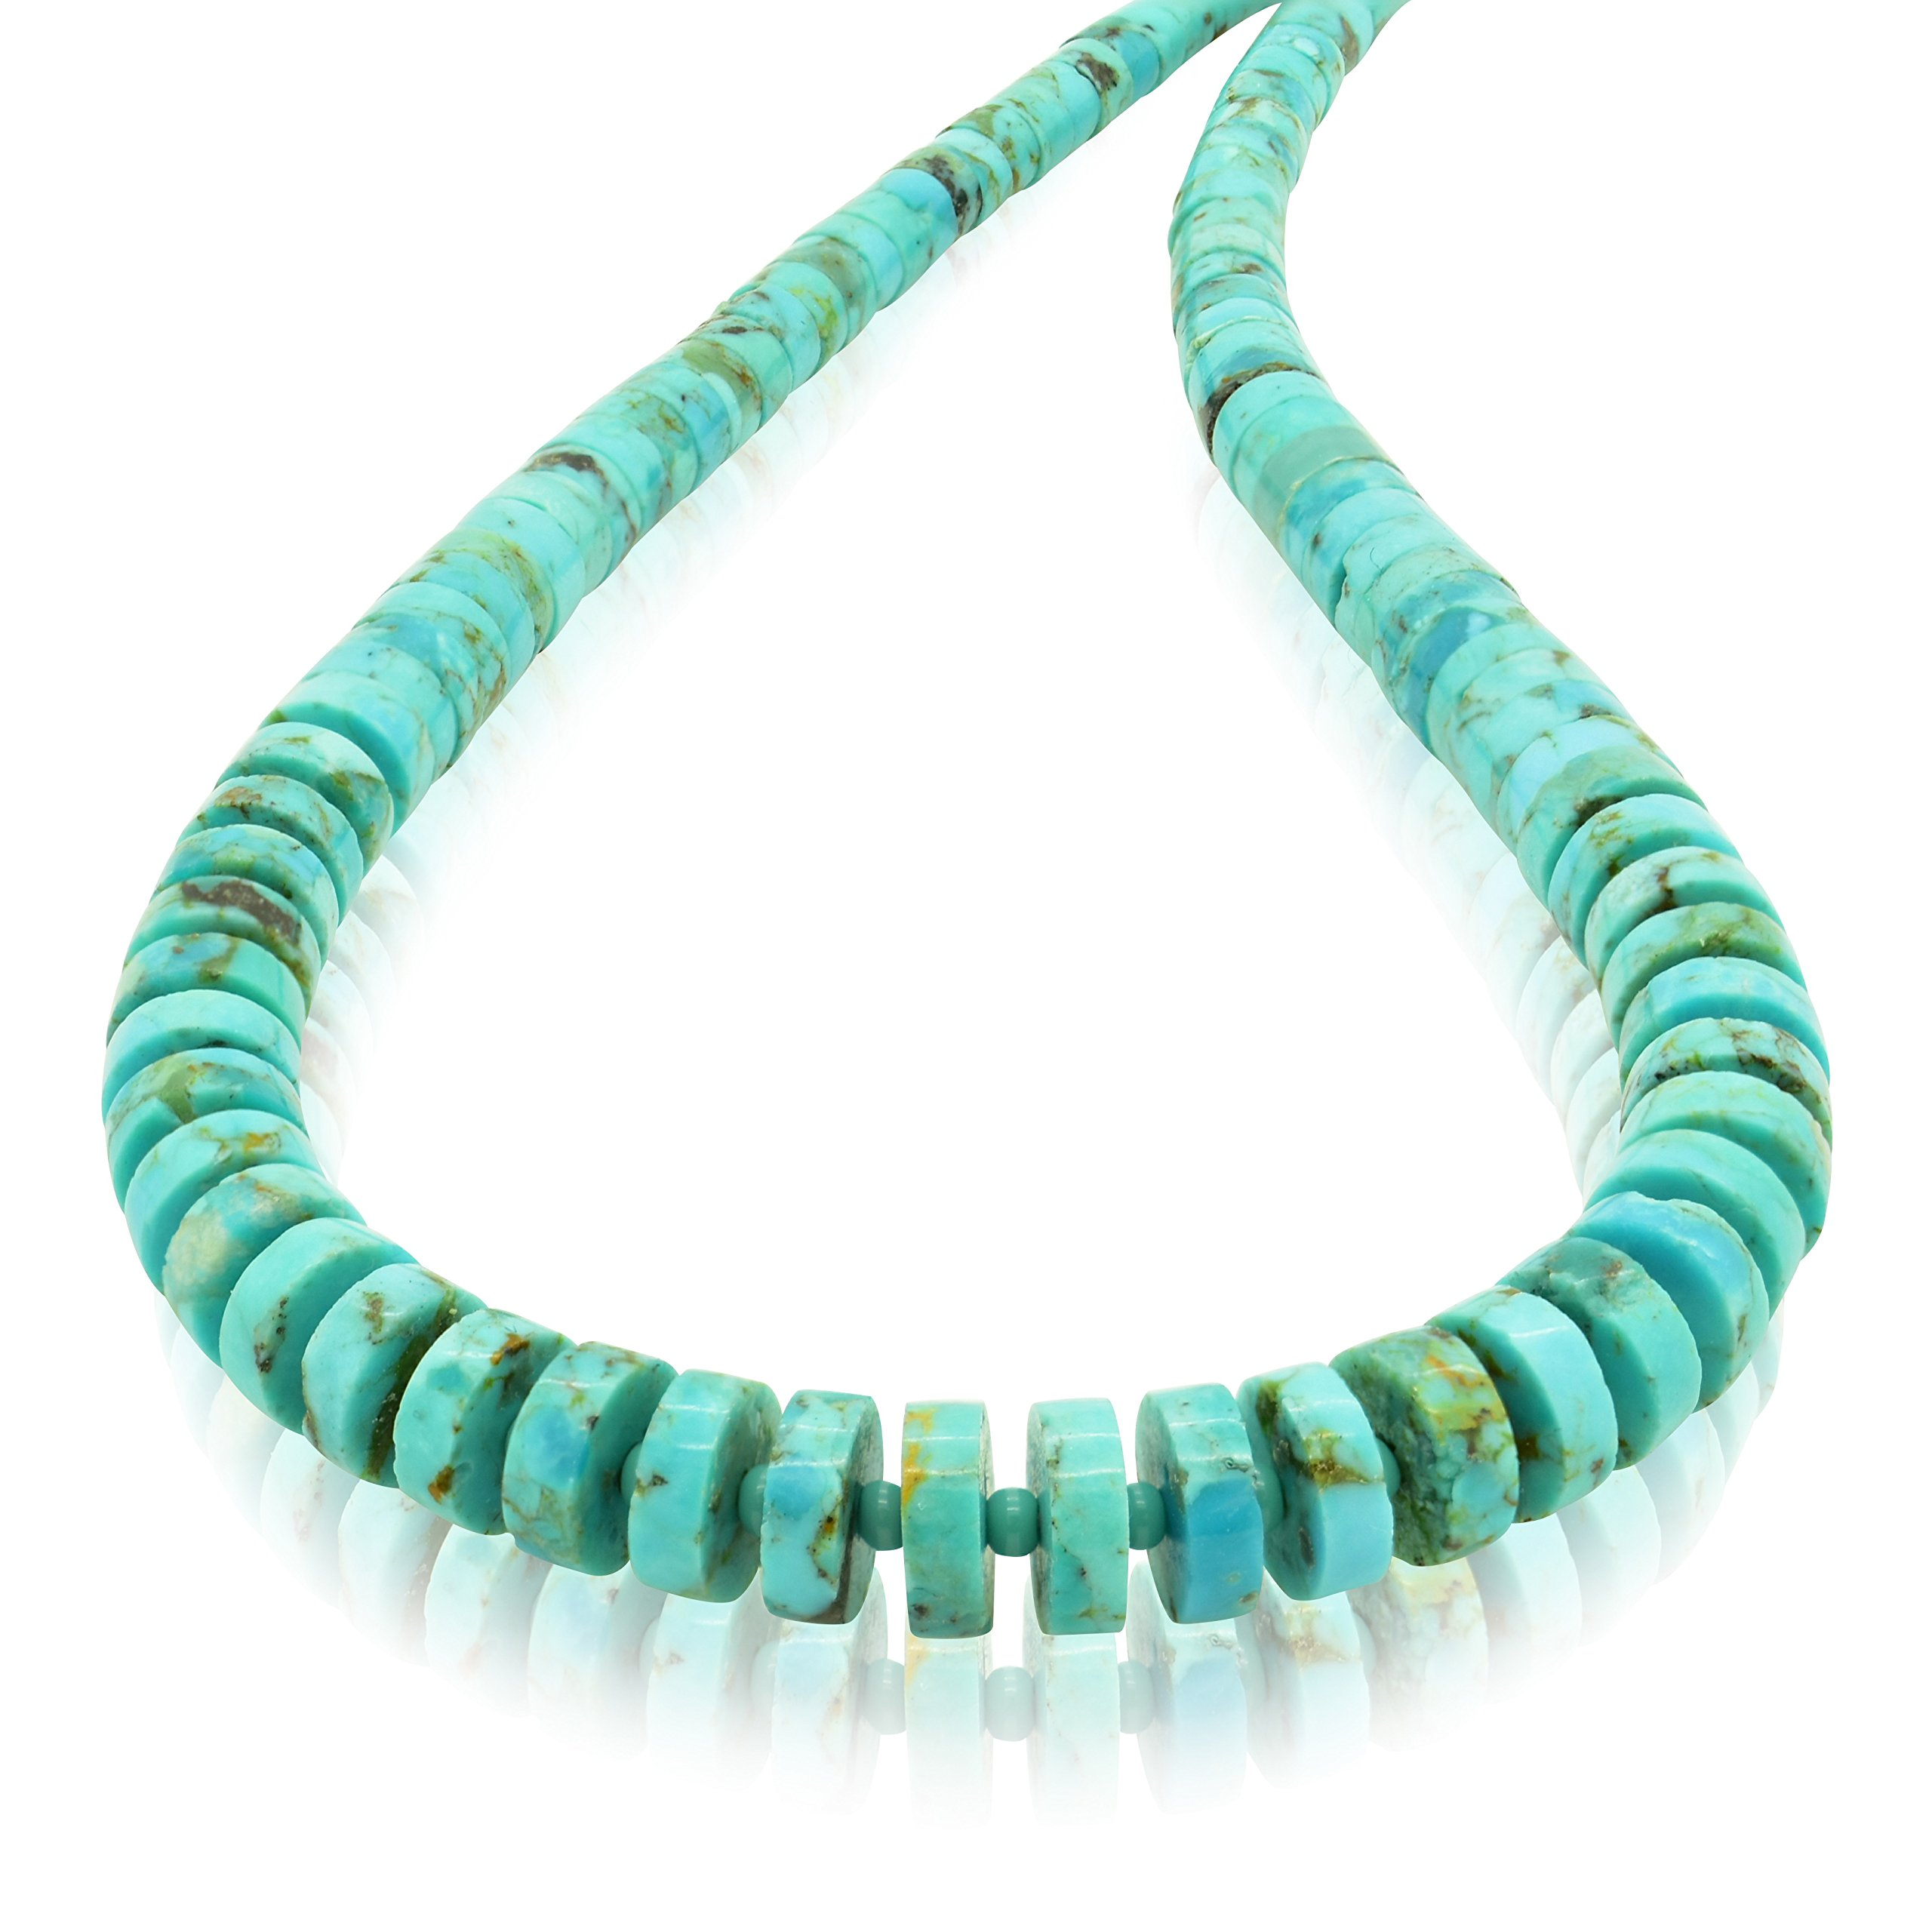 Bluejoy Genuine Natural Turquoise Graduating Heishi Necklace with Elegant Seed Spacer and Lobster Clasp by Bluejoy